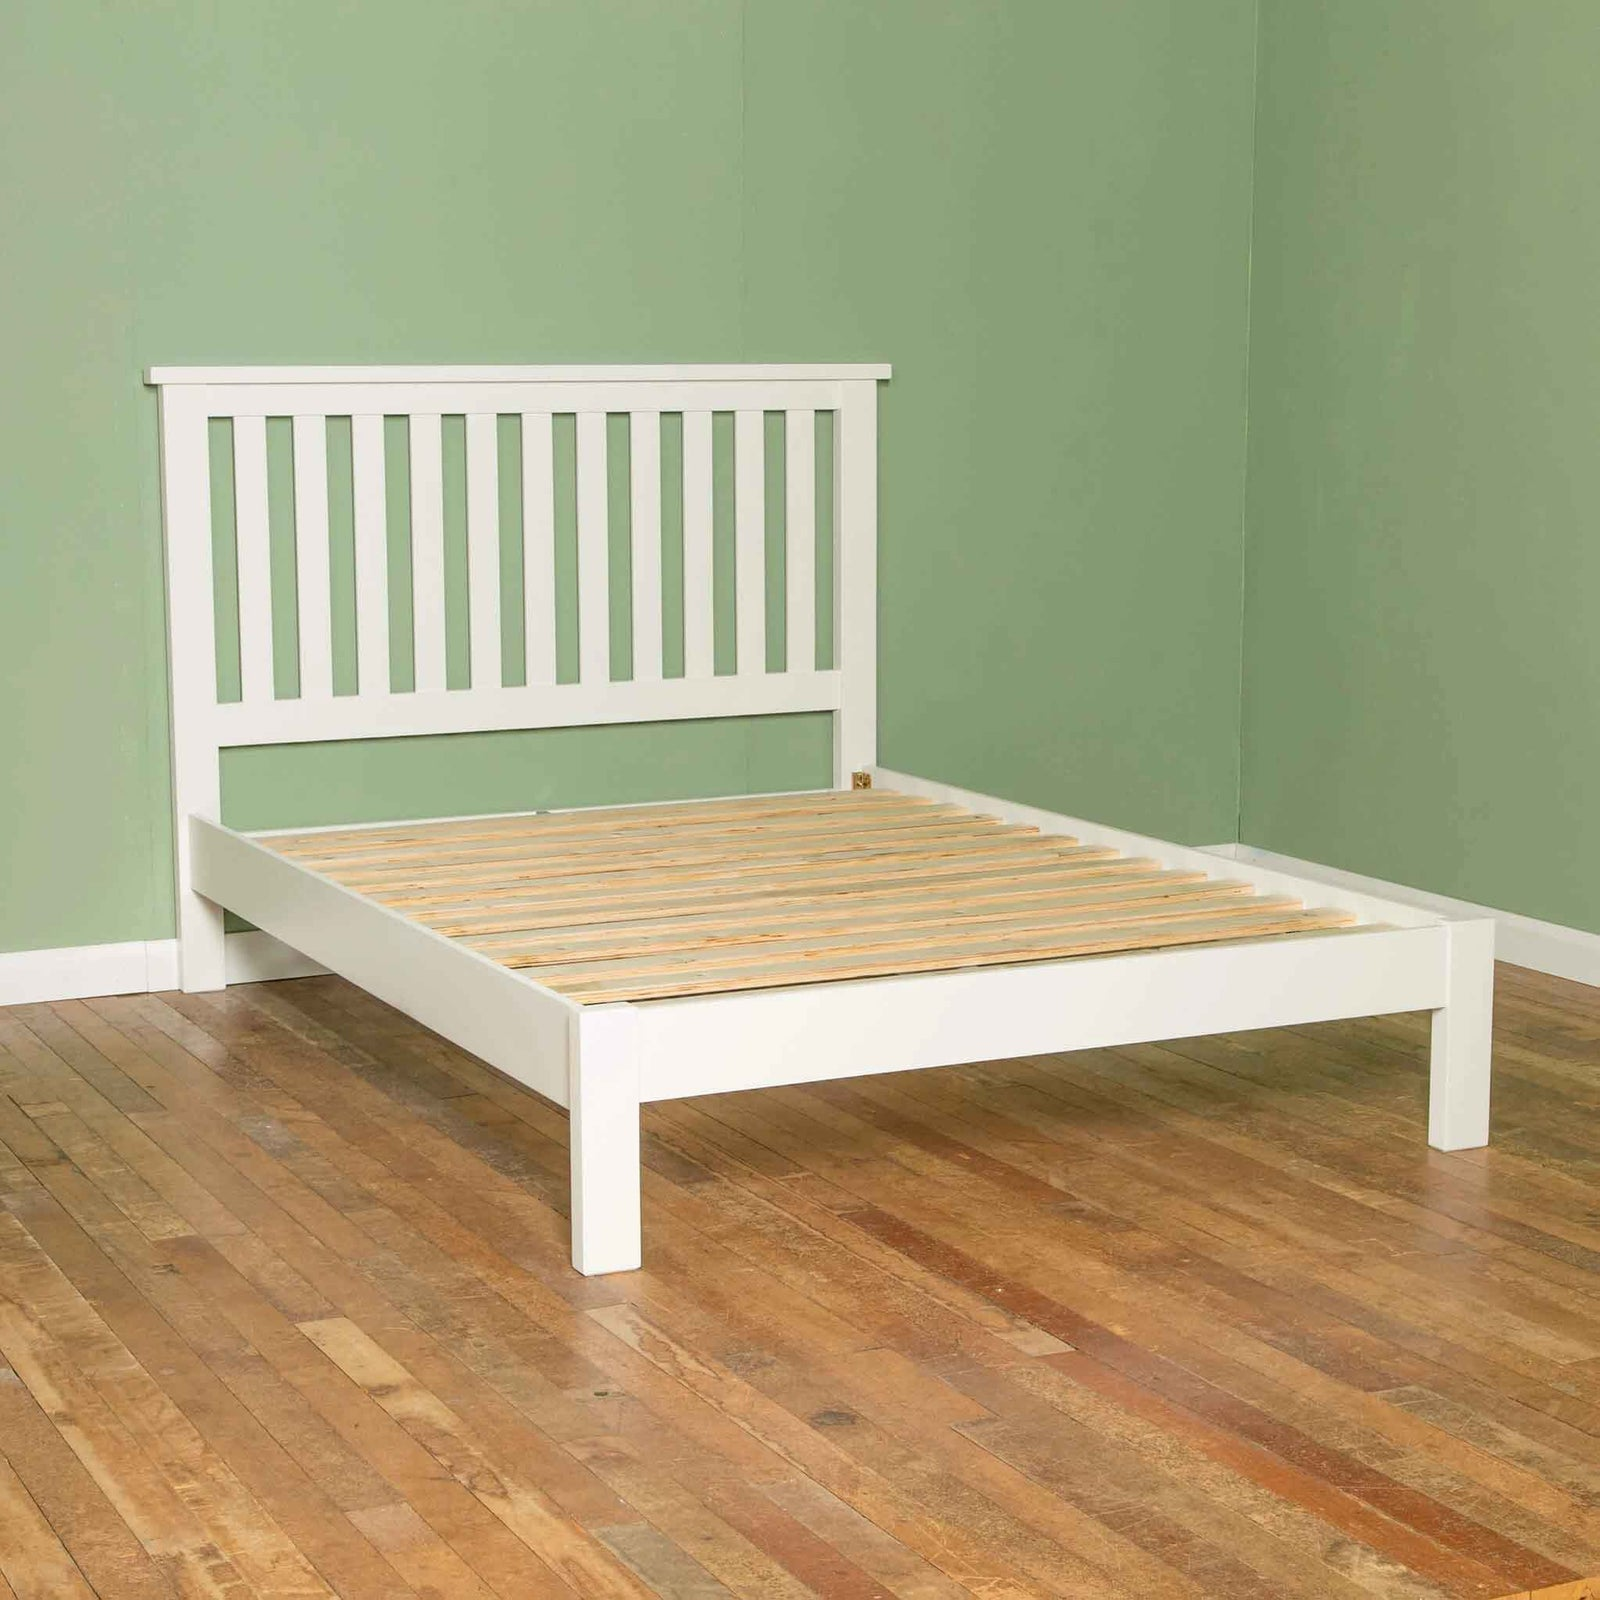 Picture of: Oak Painted Beds Quailty Value Roseland Furniture Tagged Painted